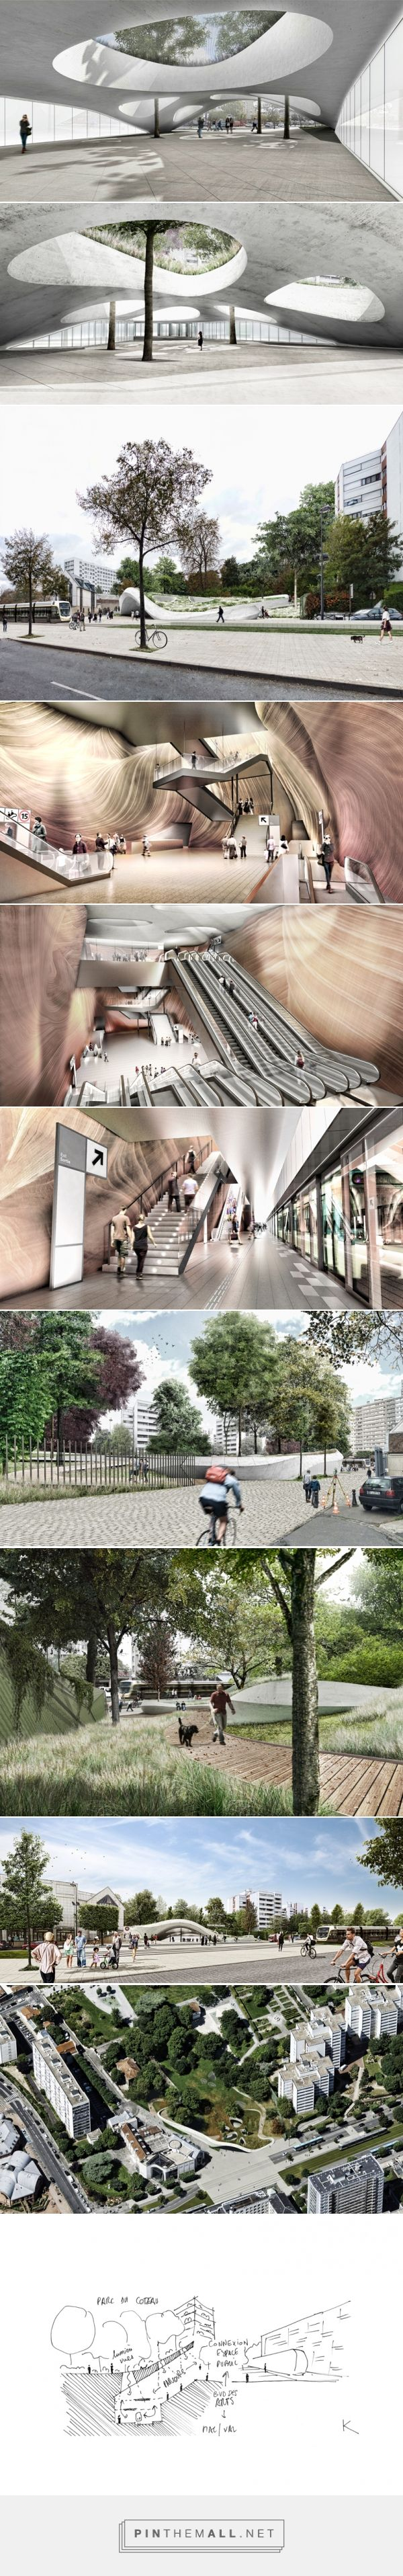 atelier king kong to build concrete canopy over vitry center metro station in france - created via http://pinthemall.net